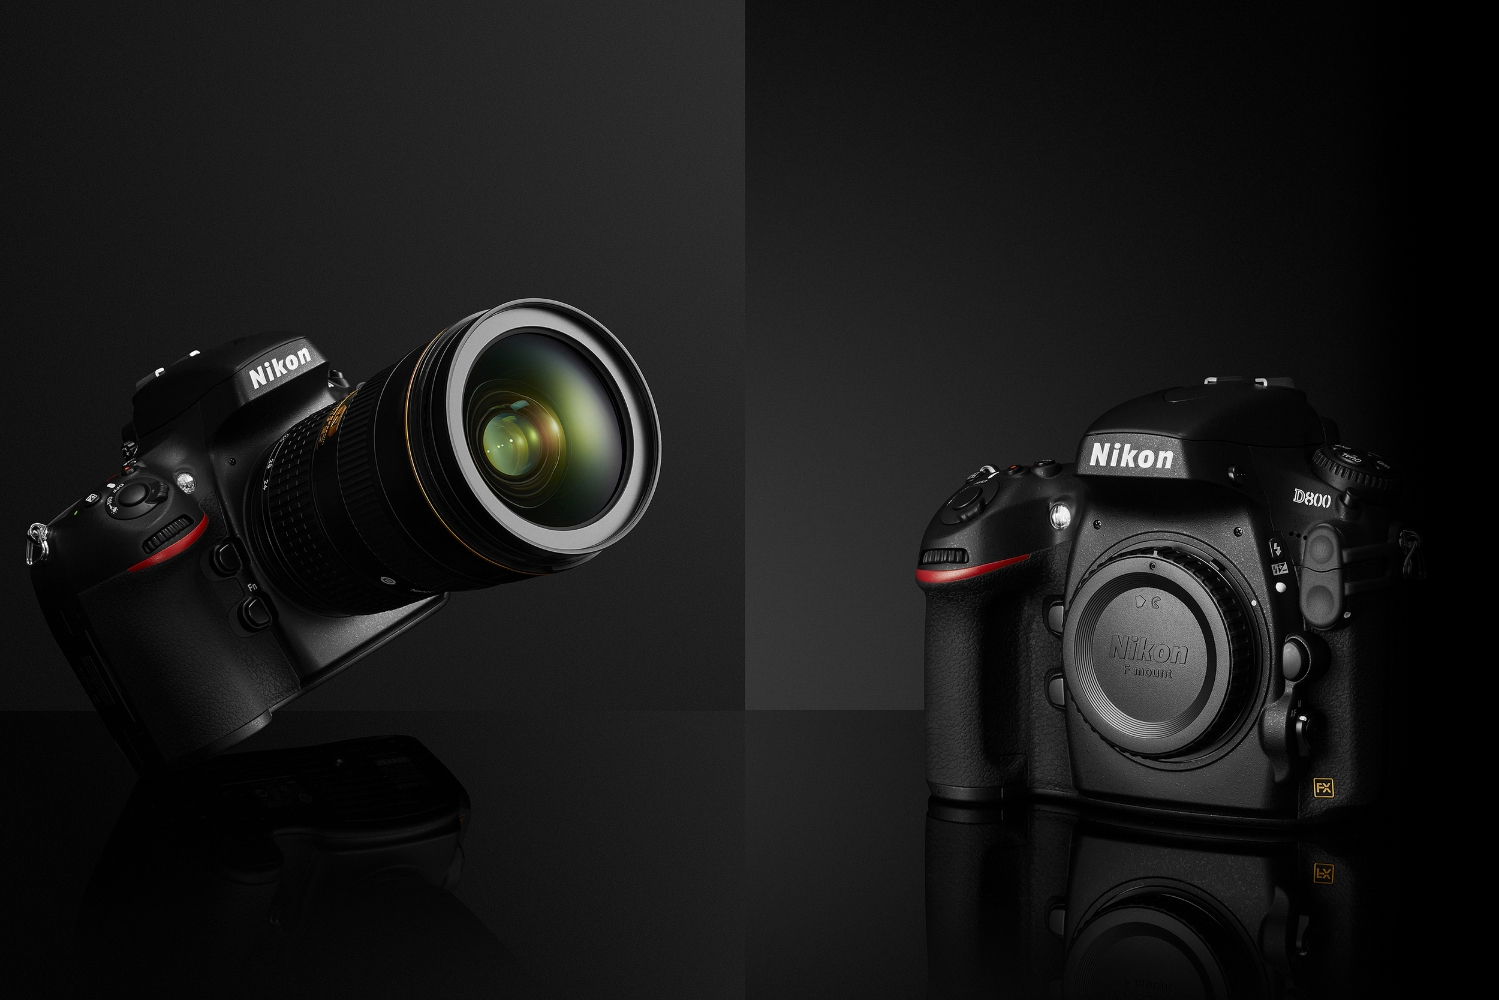 Nikon D800 Still Life Photography